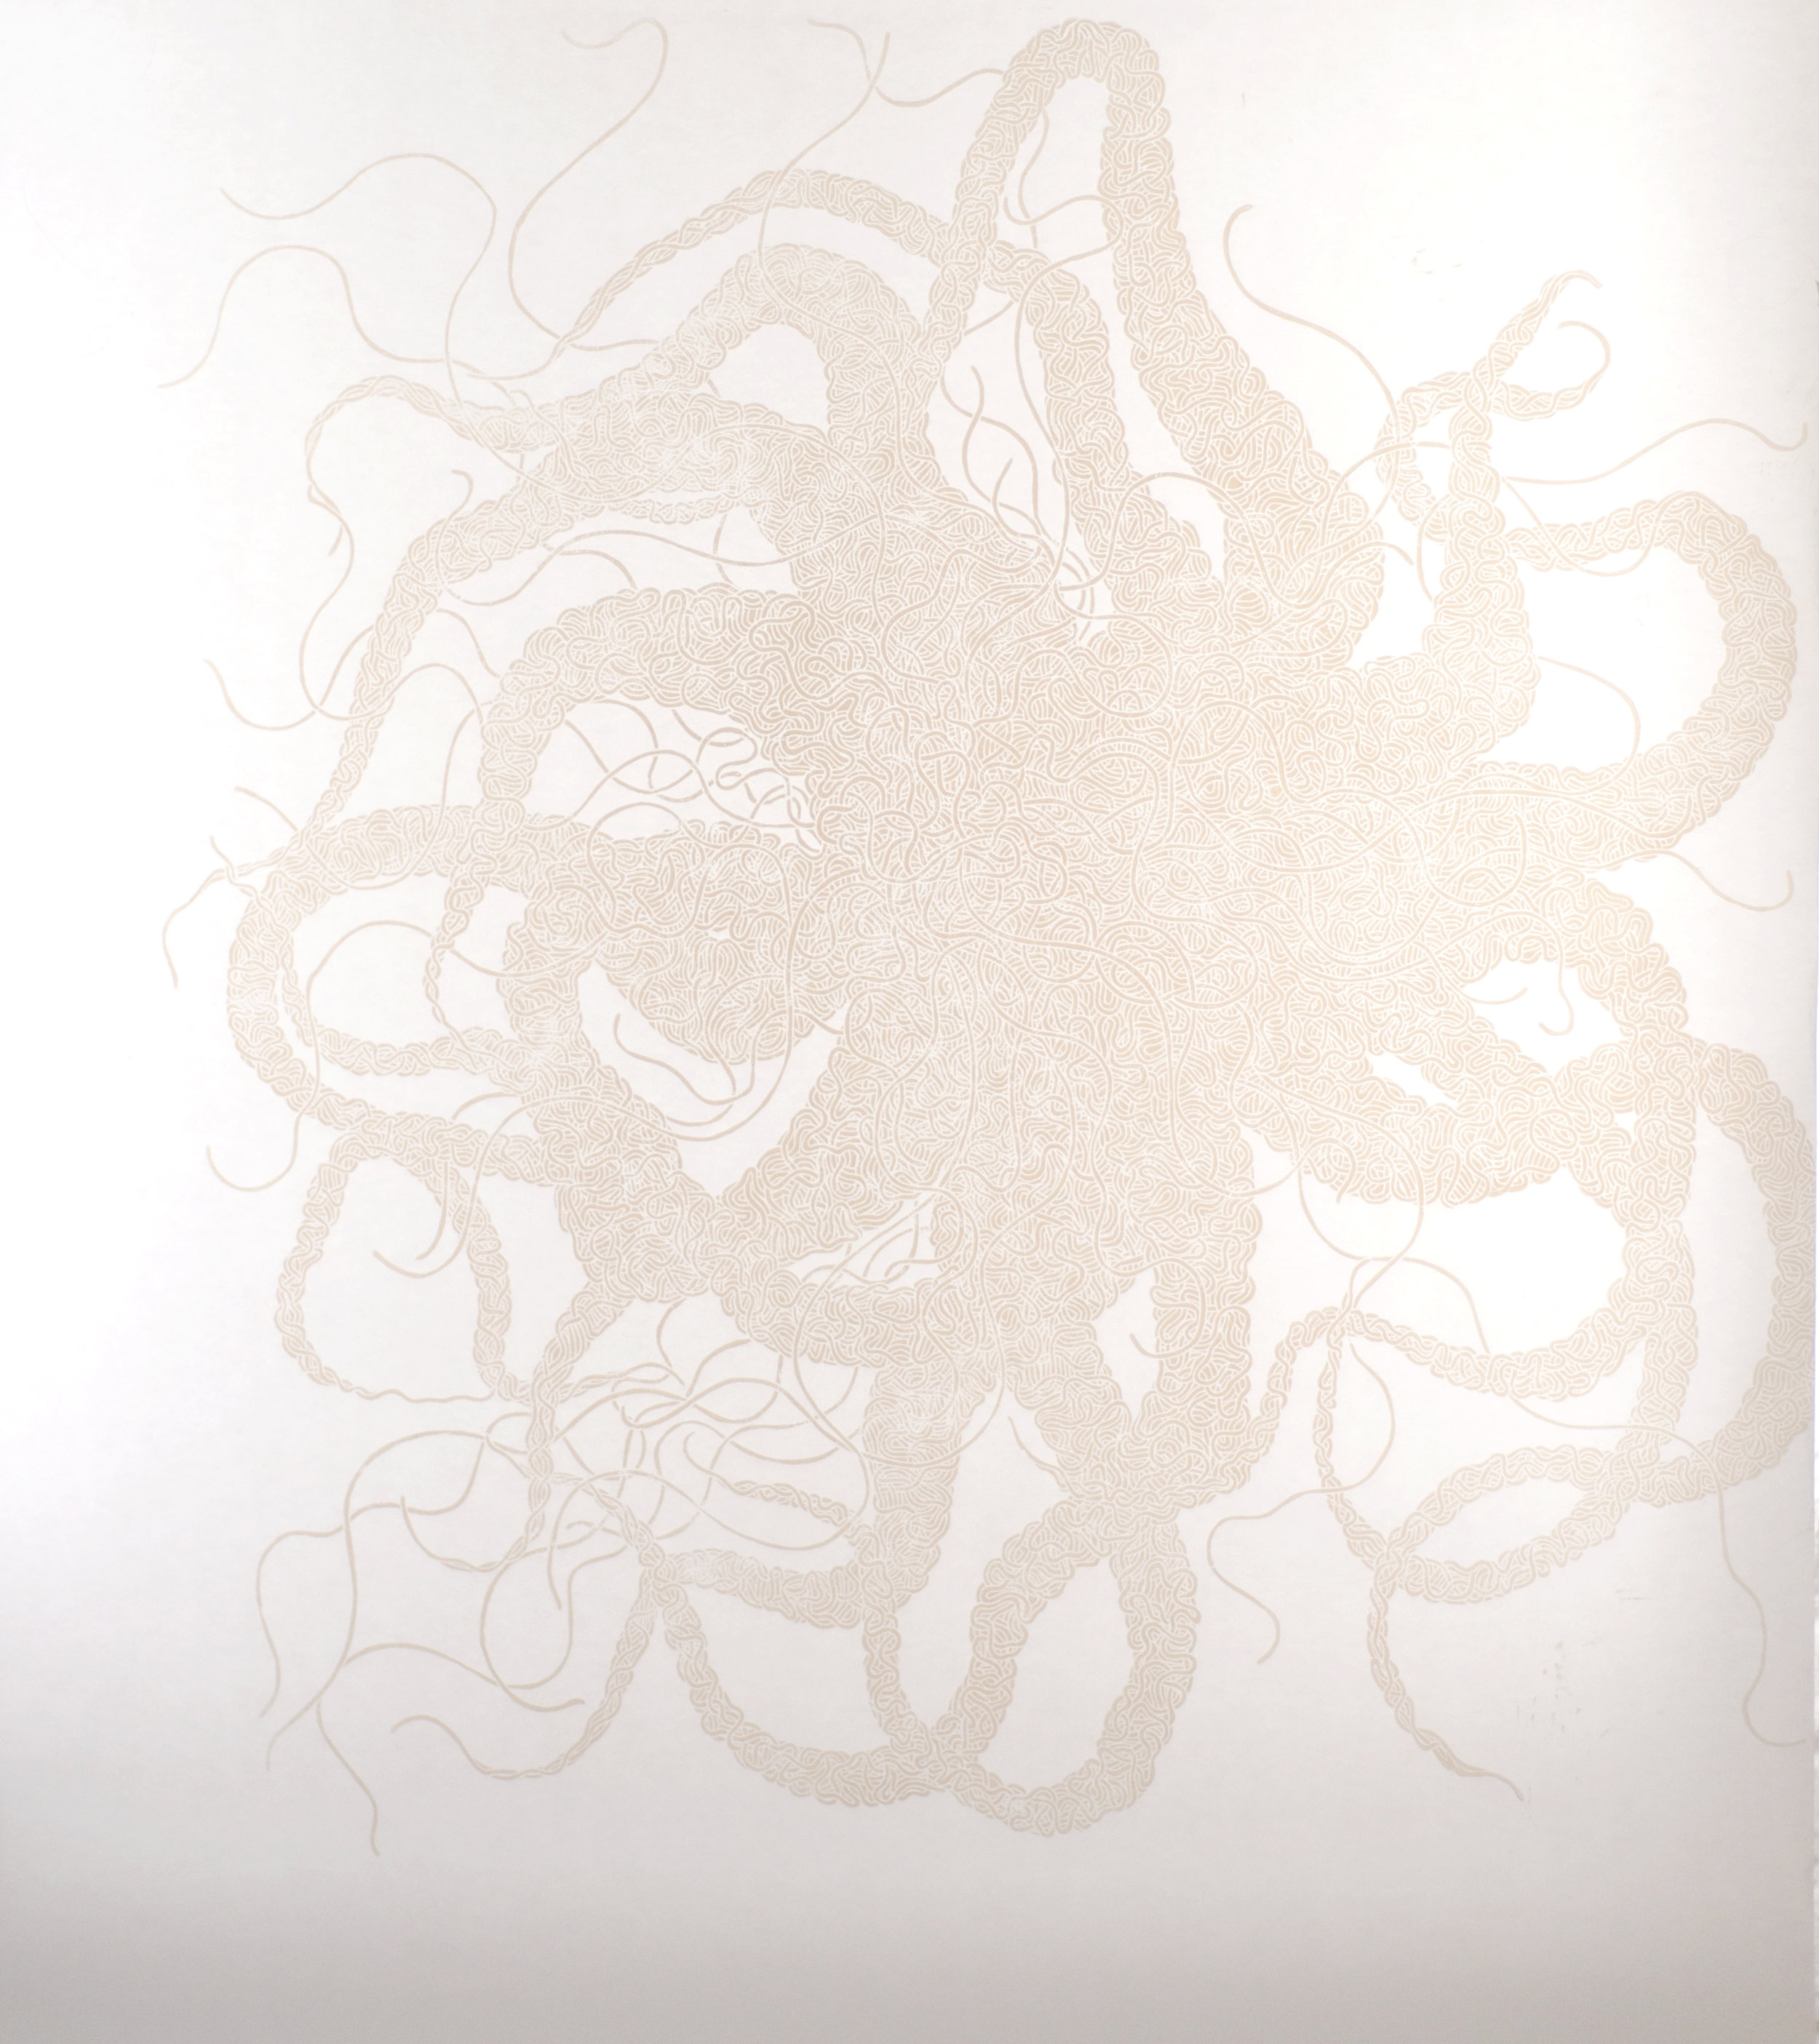 Abyss 004 , 2011,140cmx120cm.Woodcut printed white on white, edition of 3.